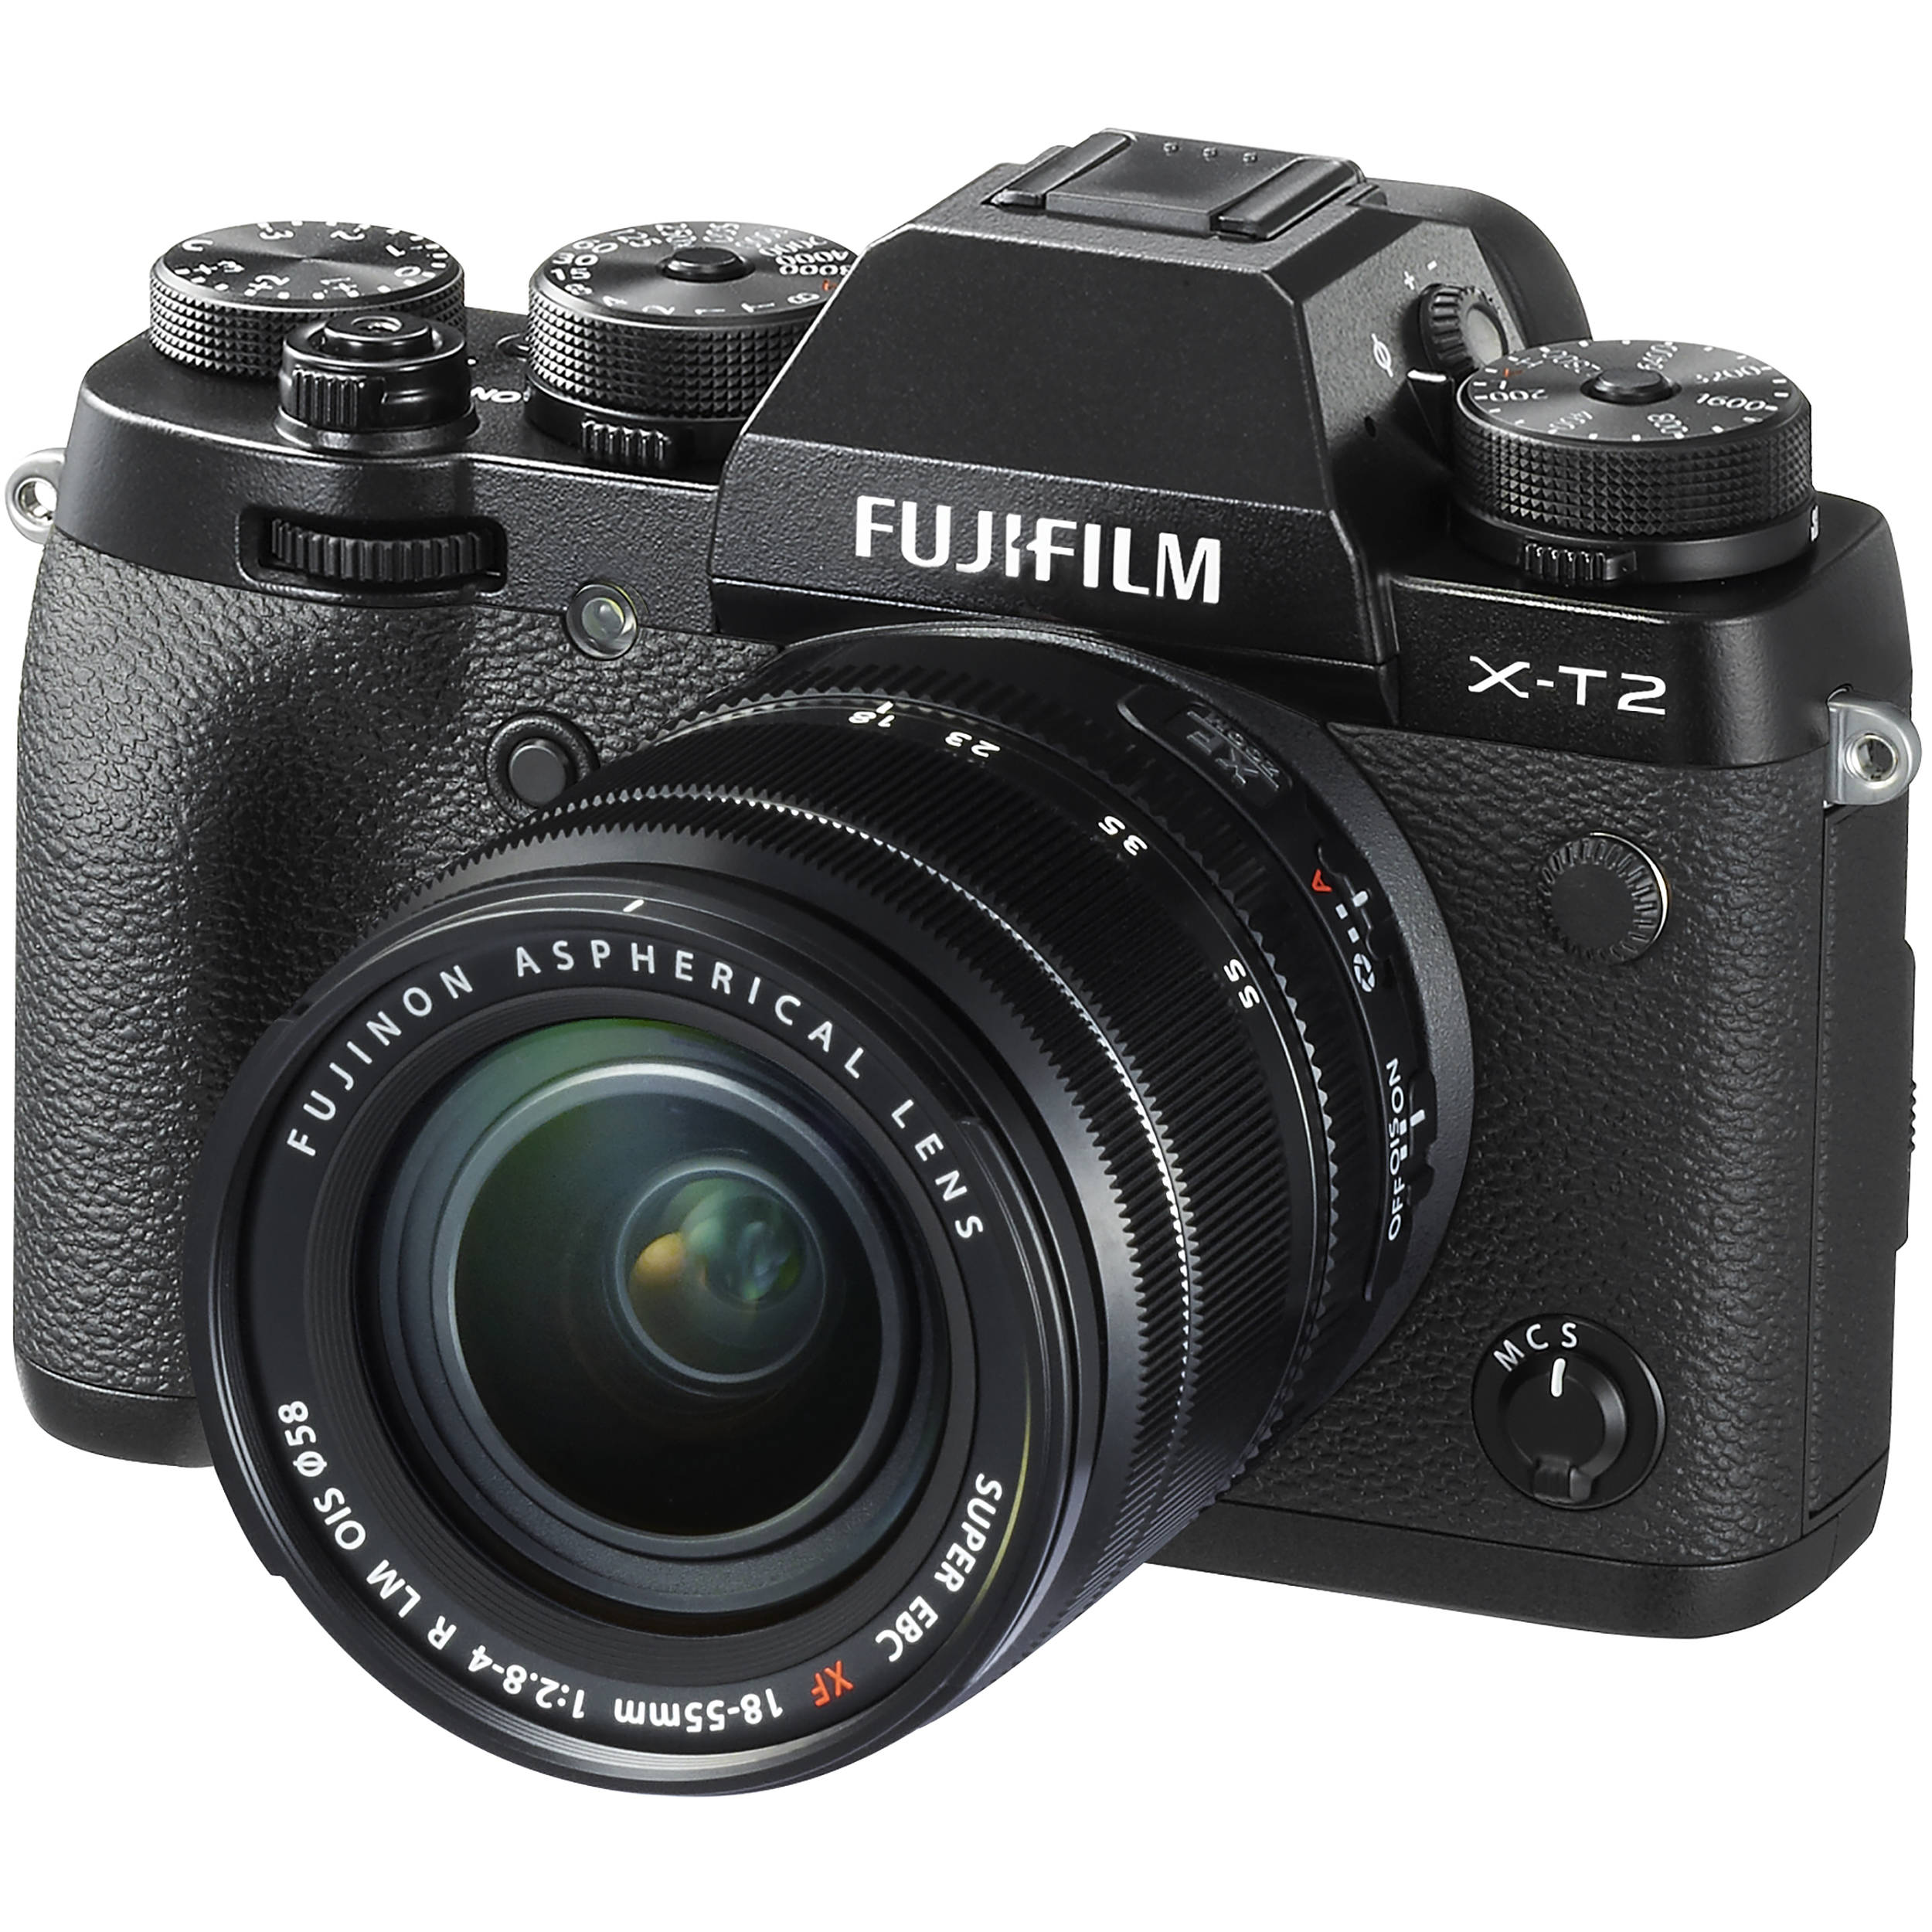 the best camera for travel. photography gear for photo tours. fujifilm x-t2 camera